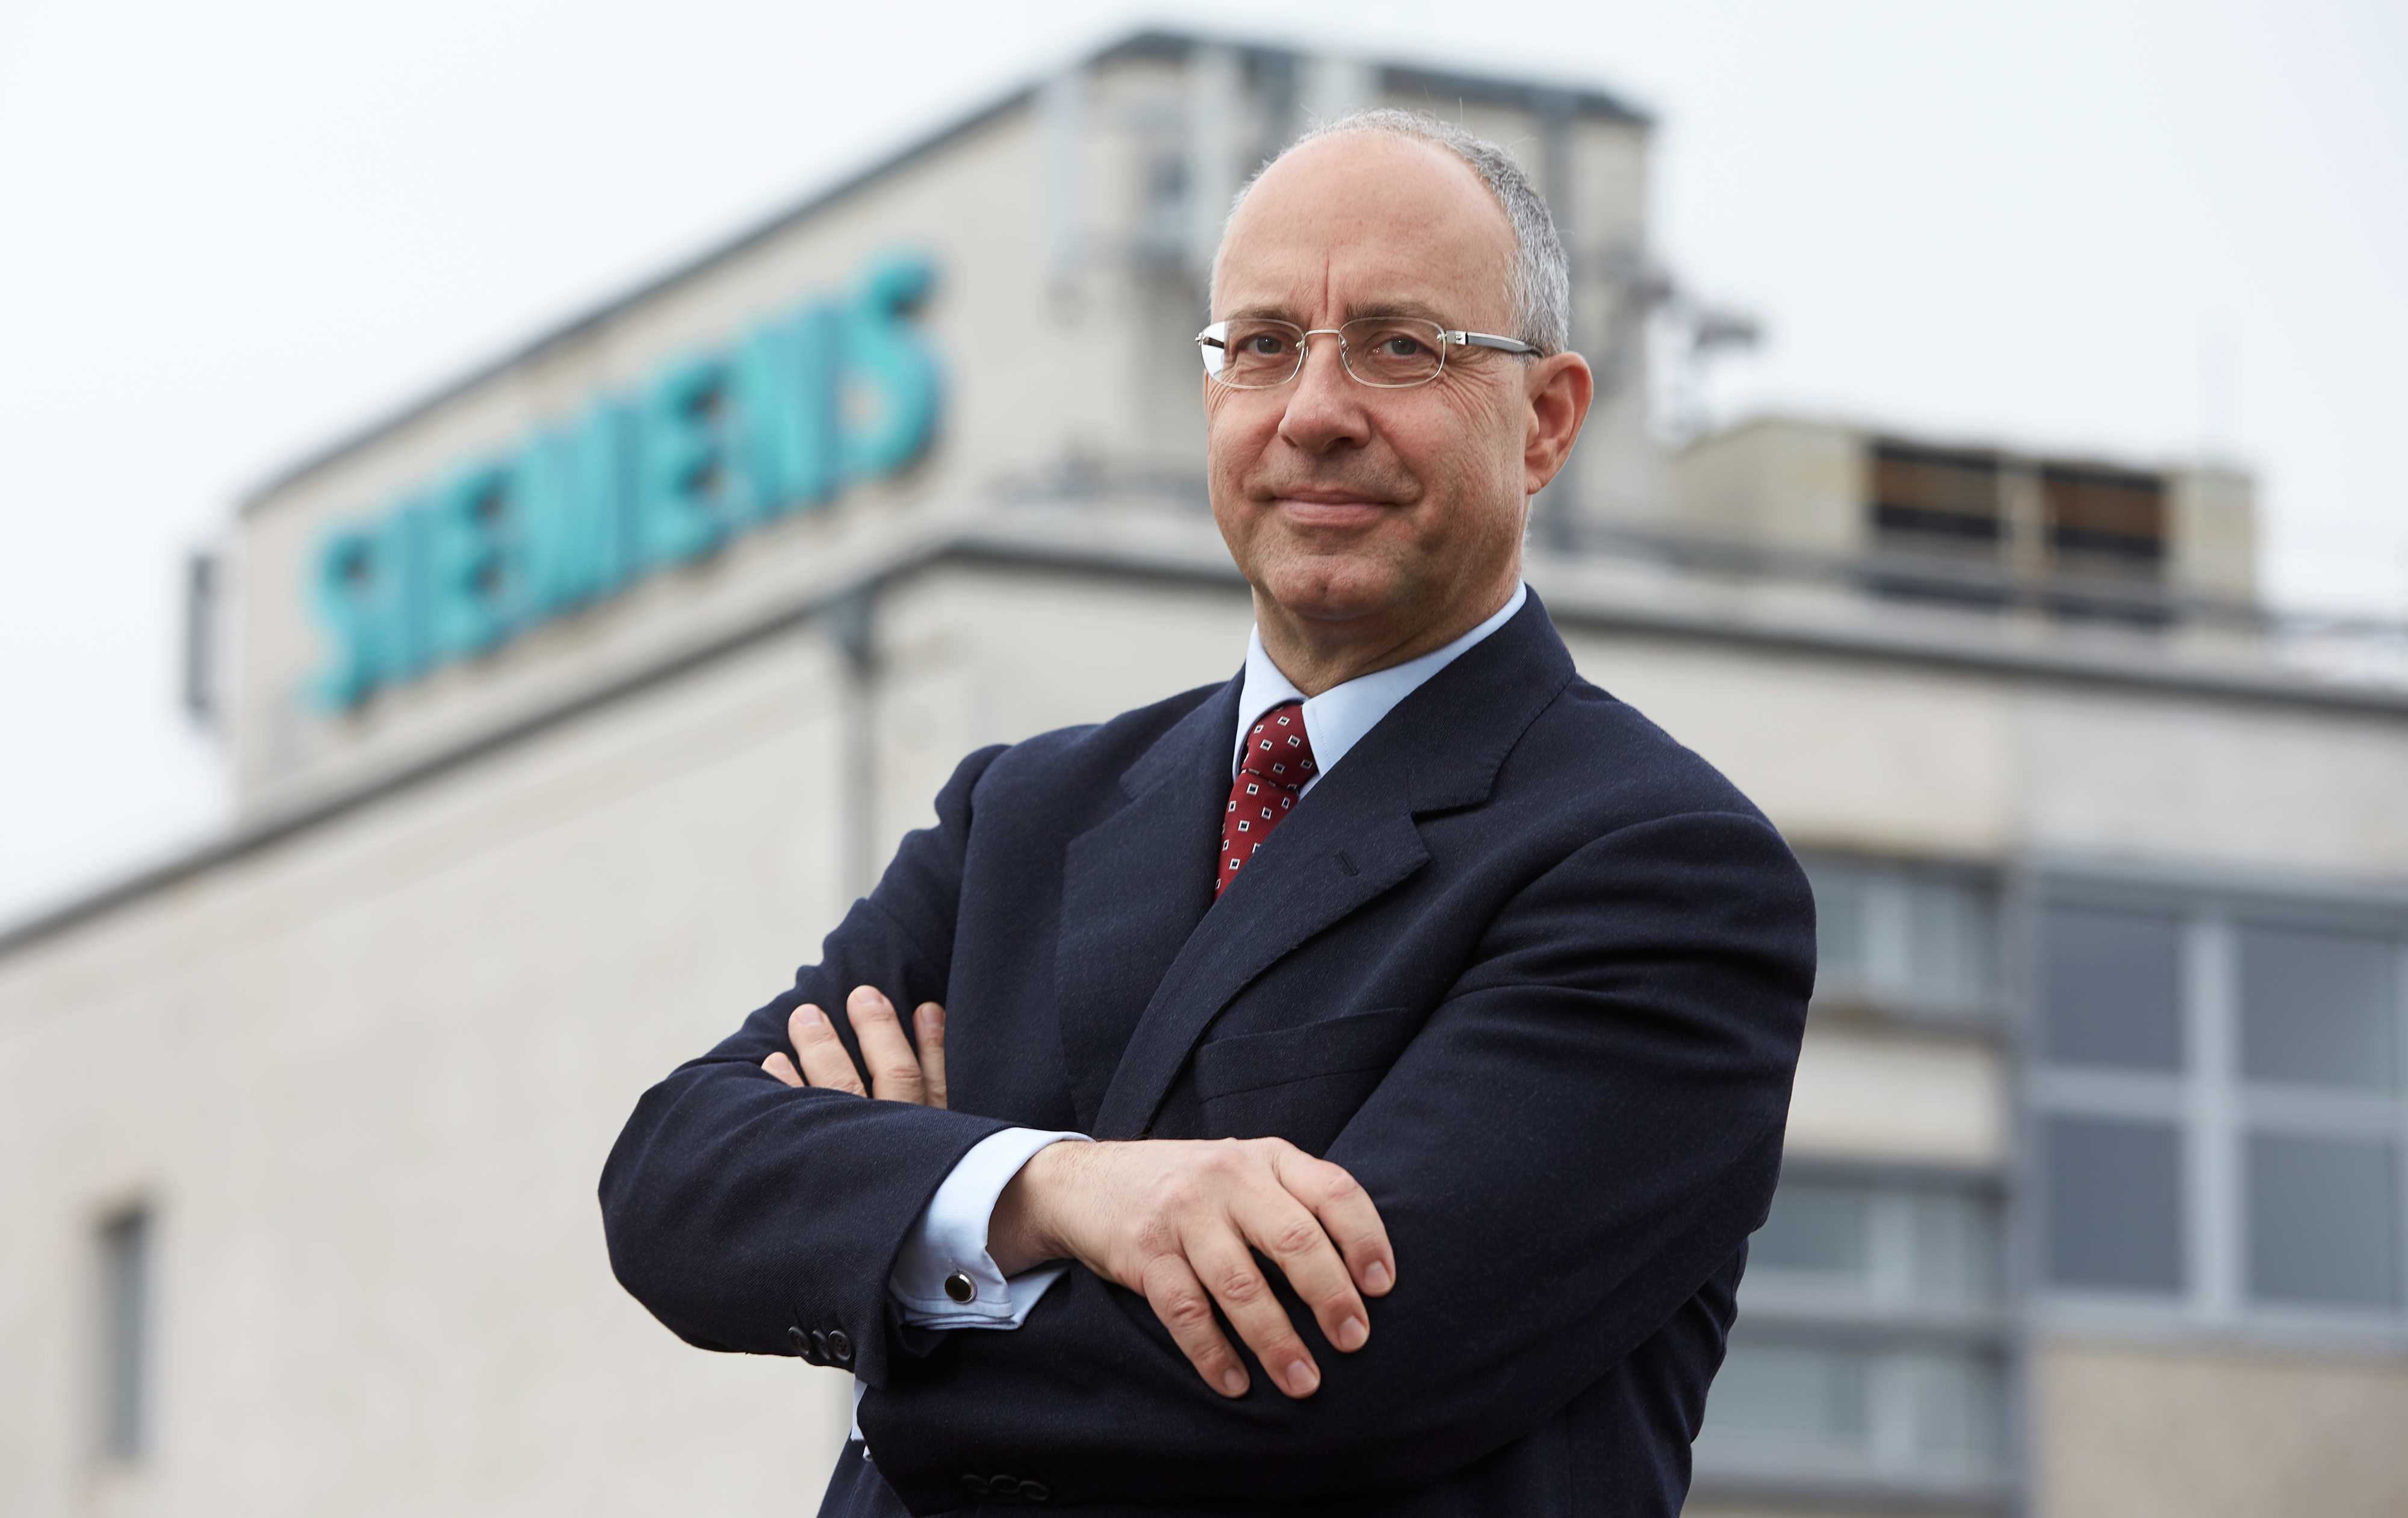 Xpat Interview: Dale A. Martin, CEO, Siemens Hungary